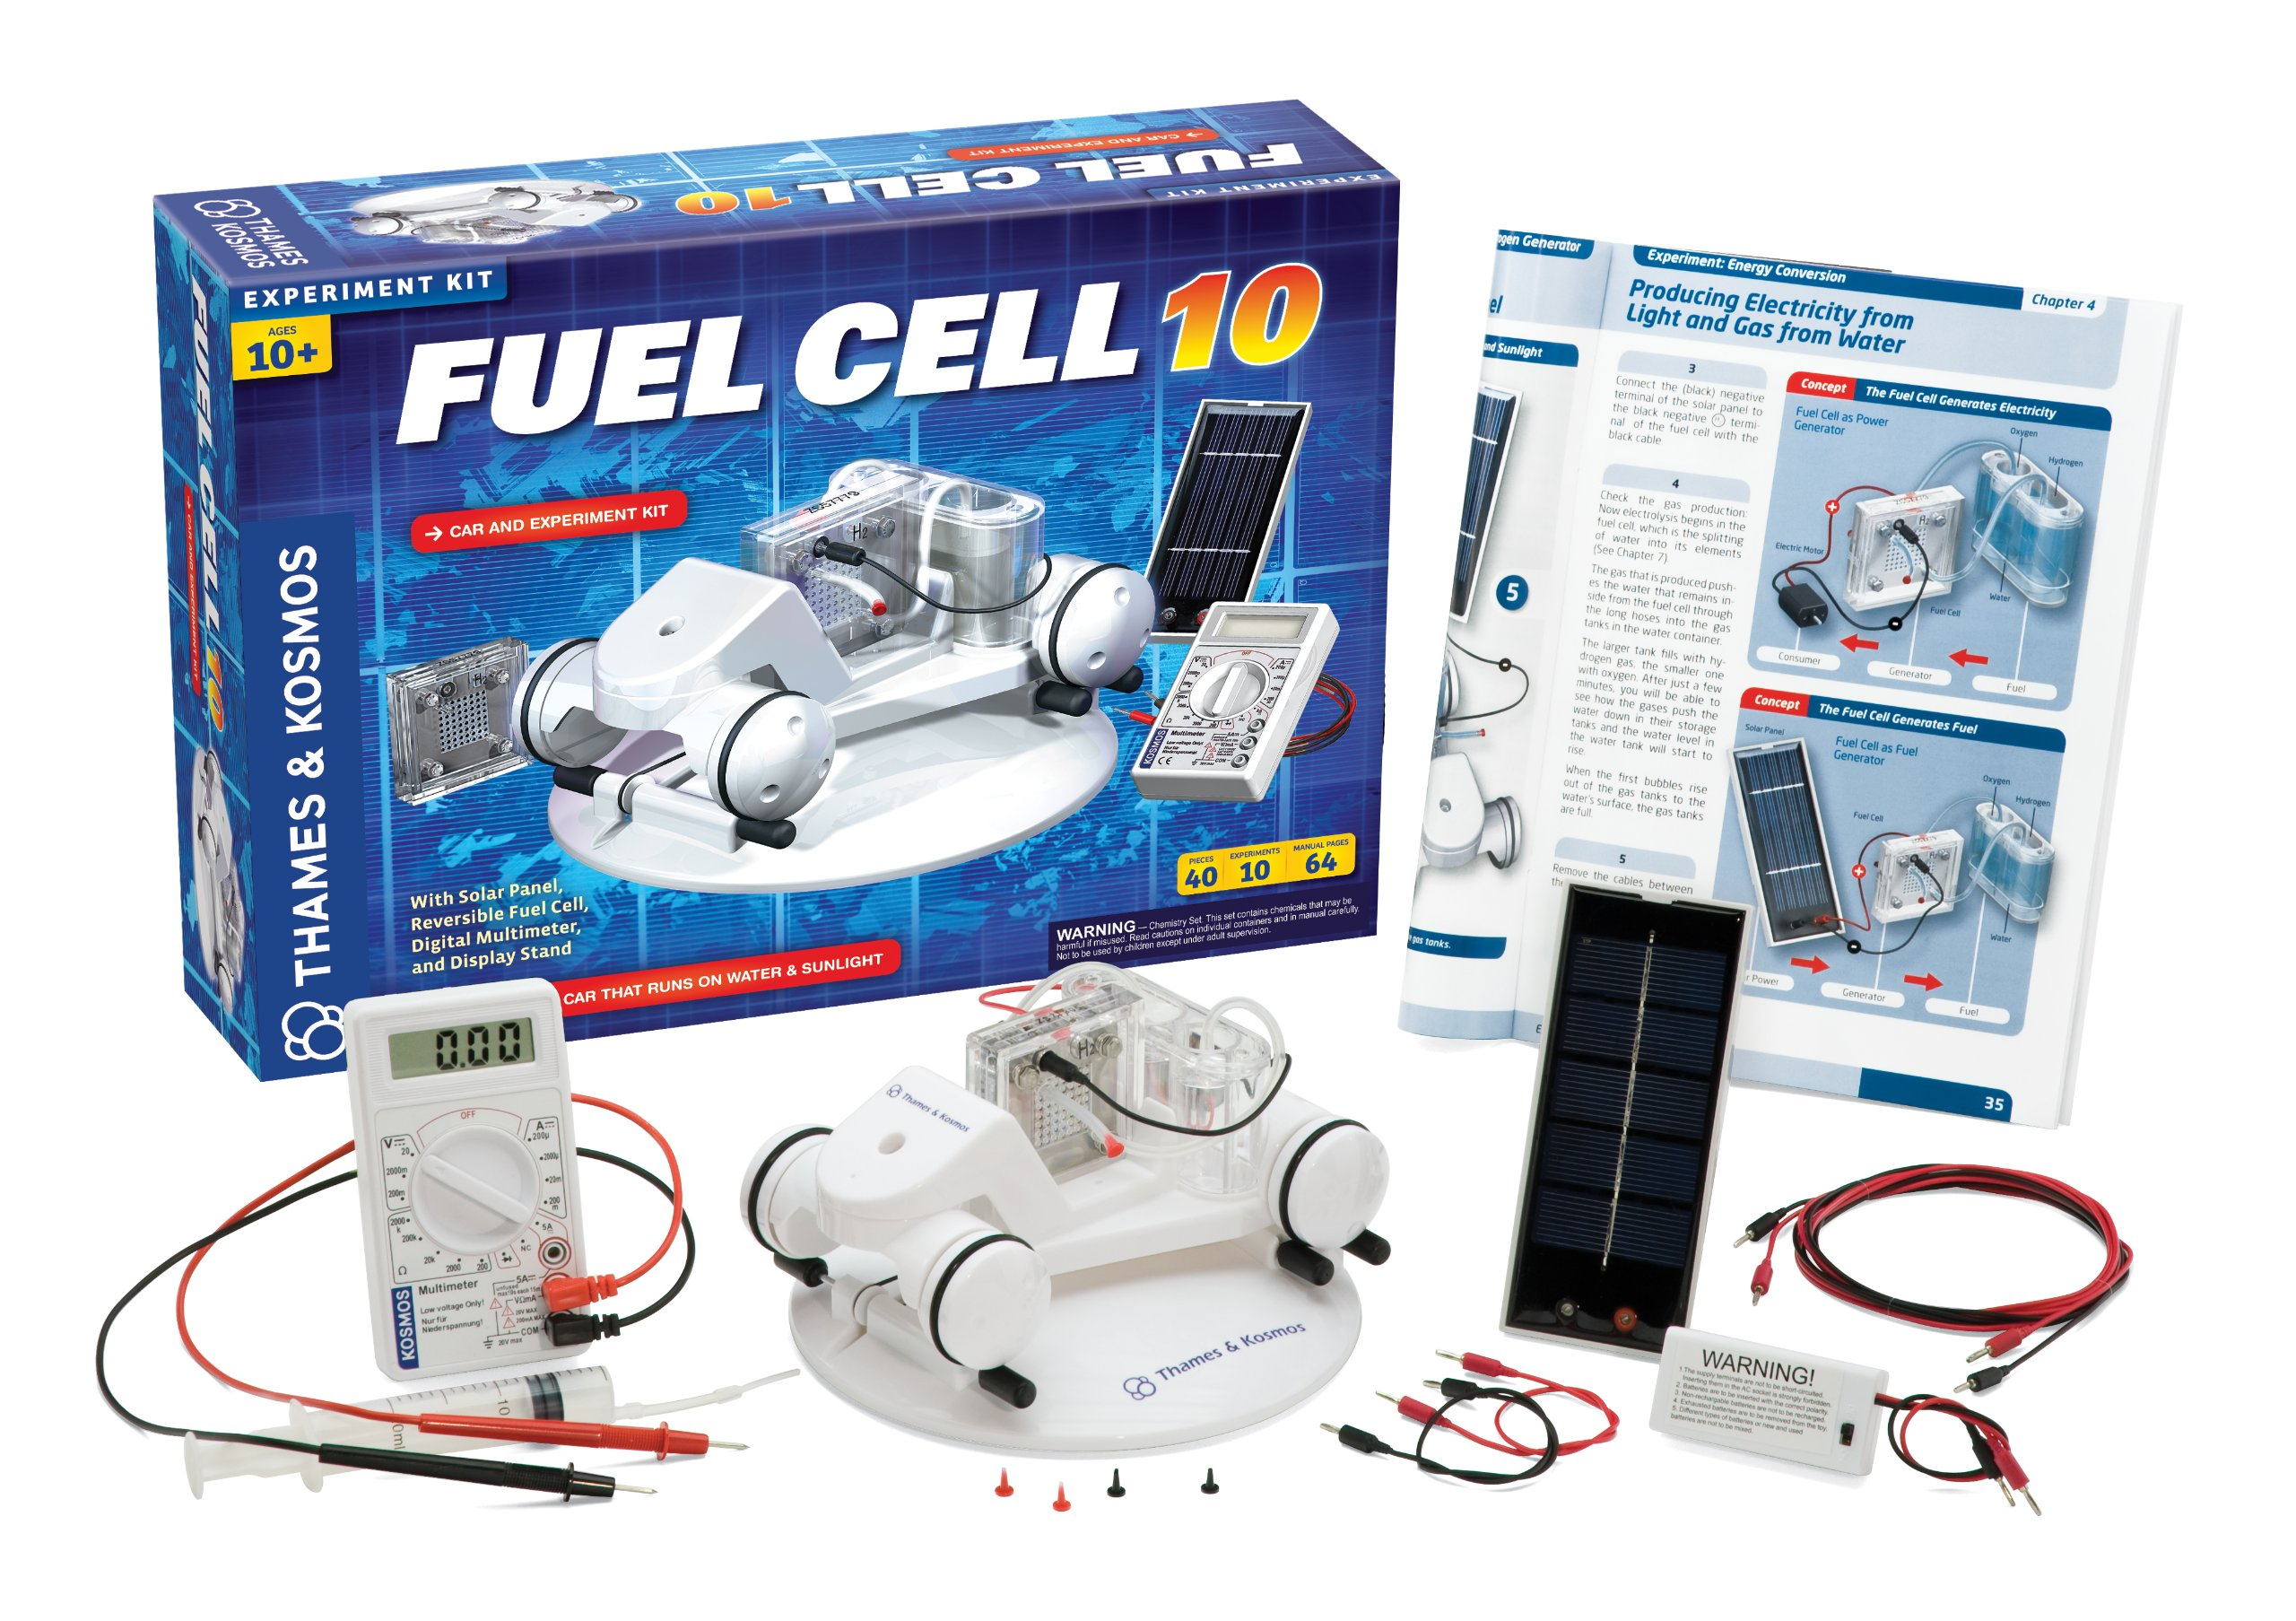 Thames & Kosmos Alternative Energy and Environmental Science Fuel Cell 10 by Thames & Kosmos (Image #1)